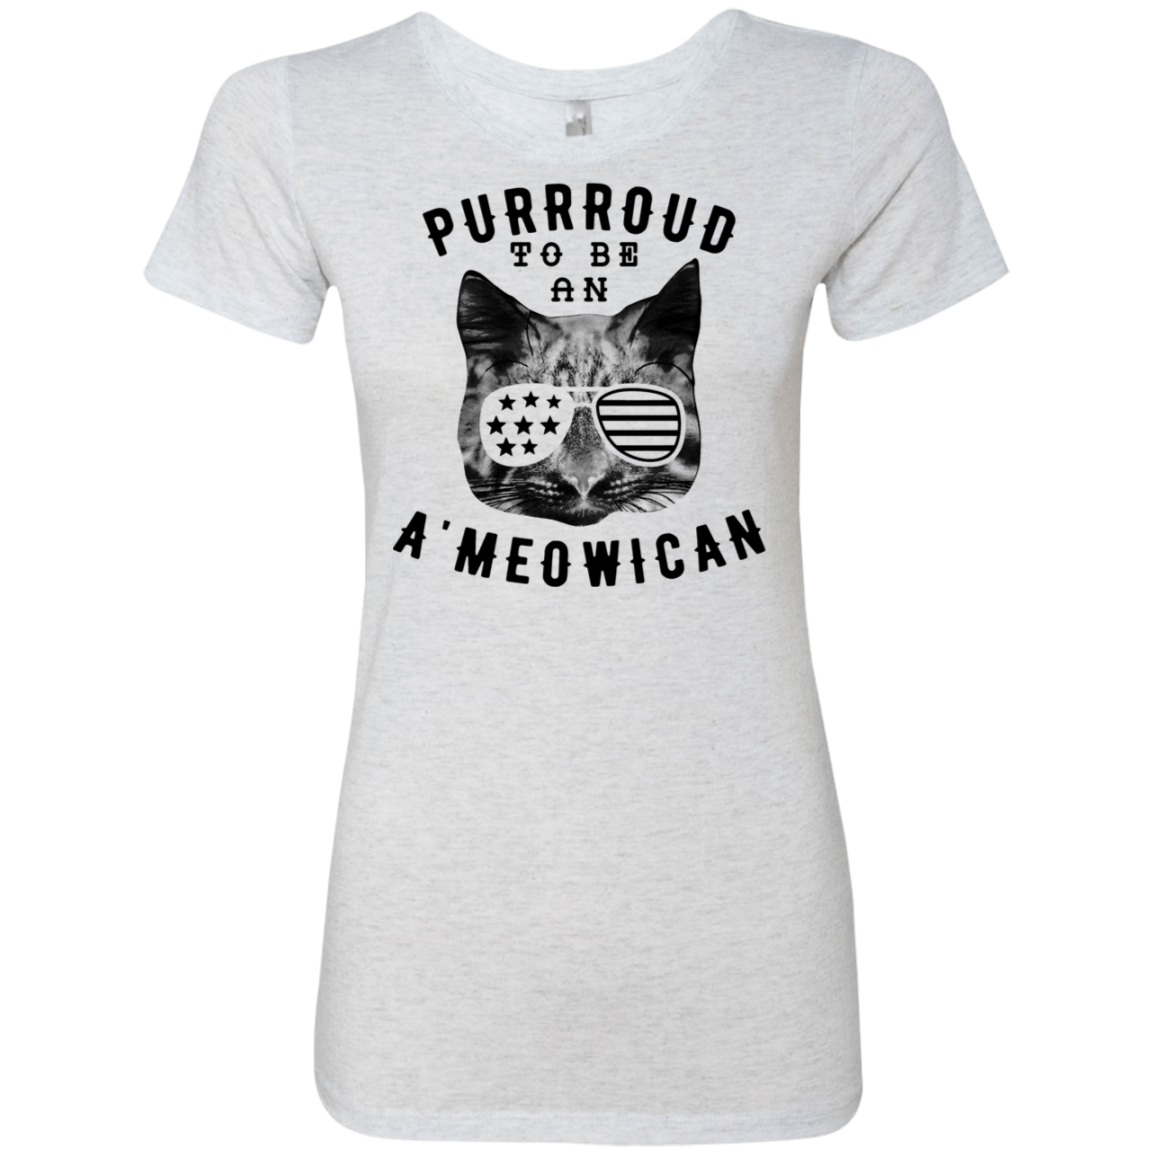 Purrroud To be An American Women's Classic Tee